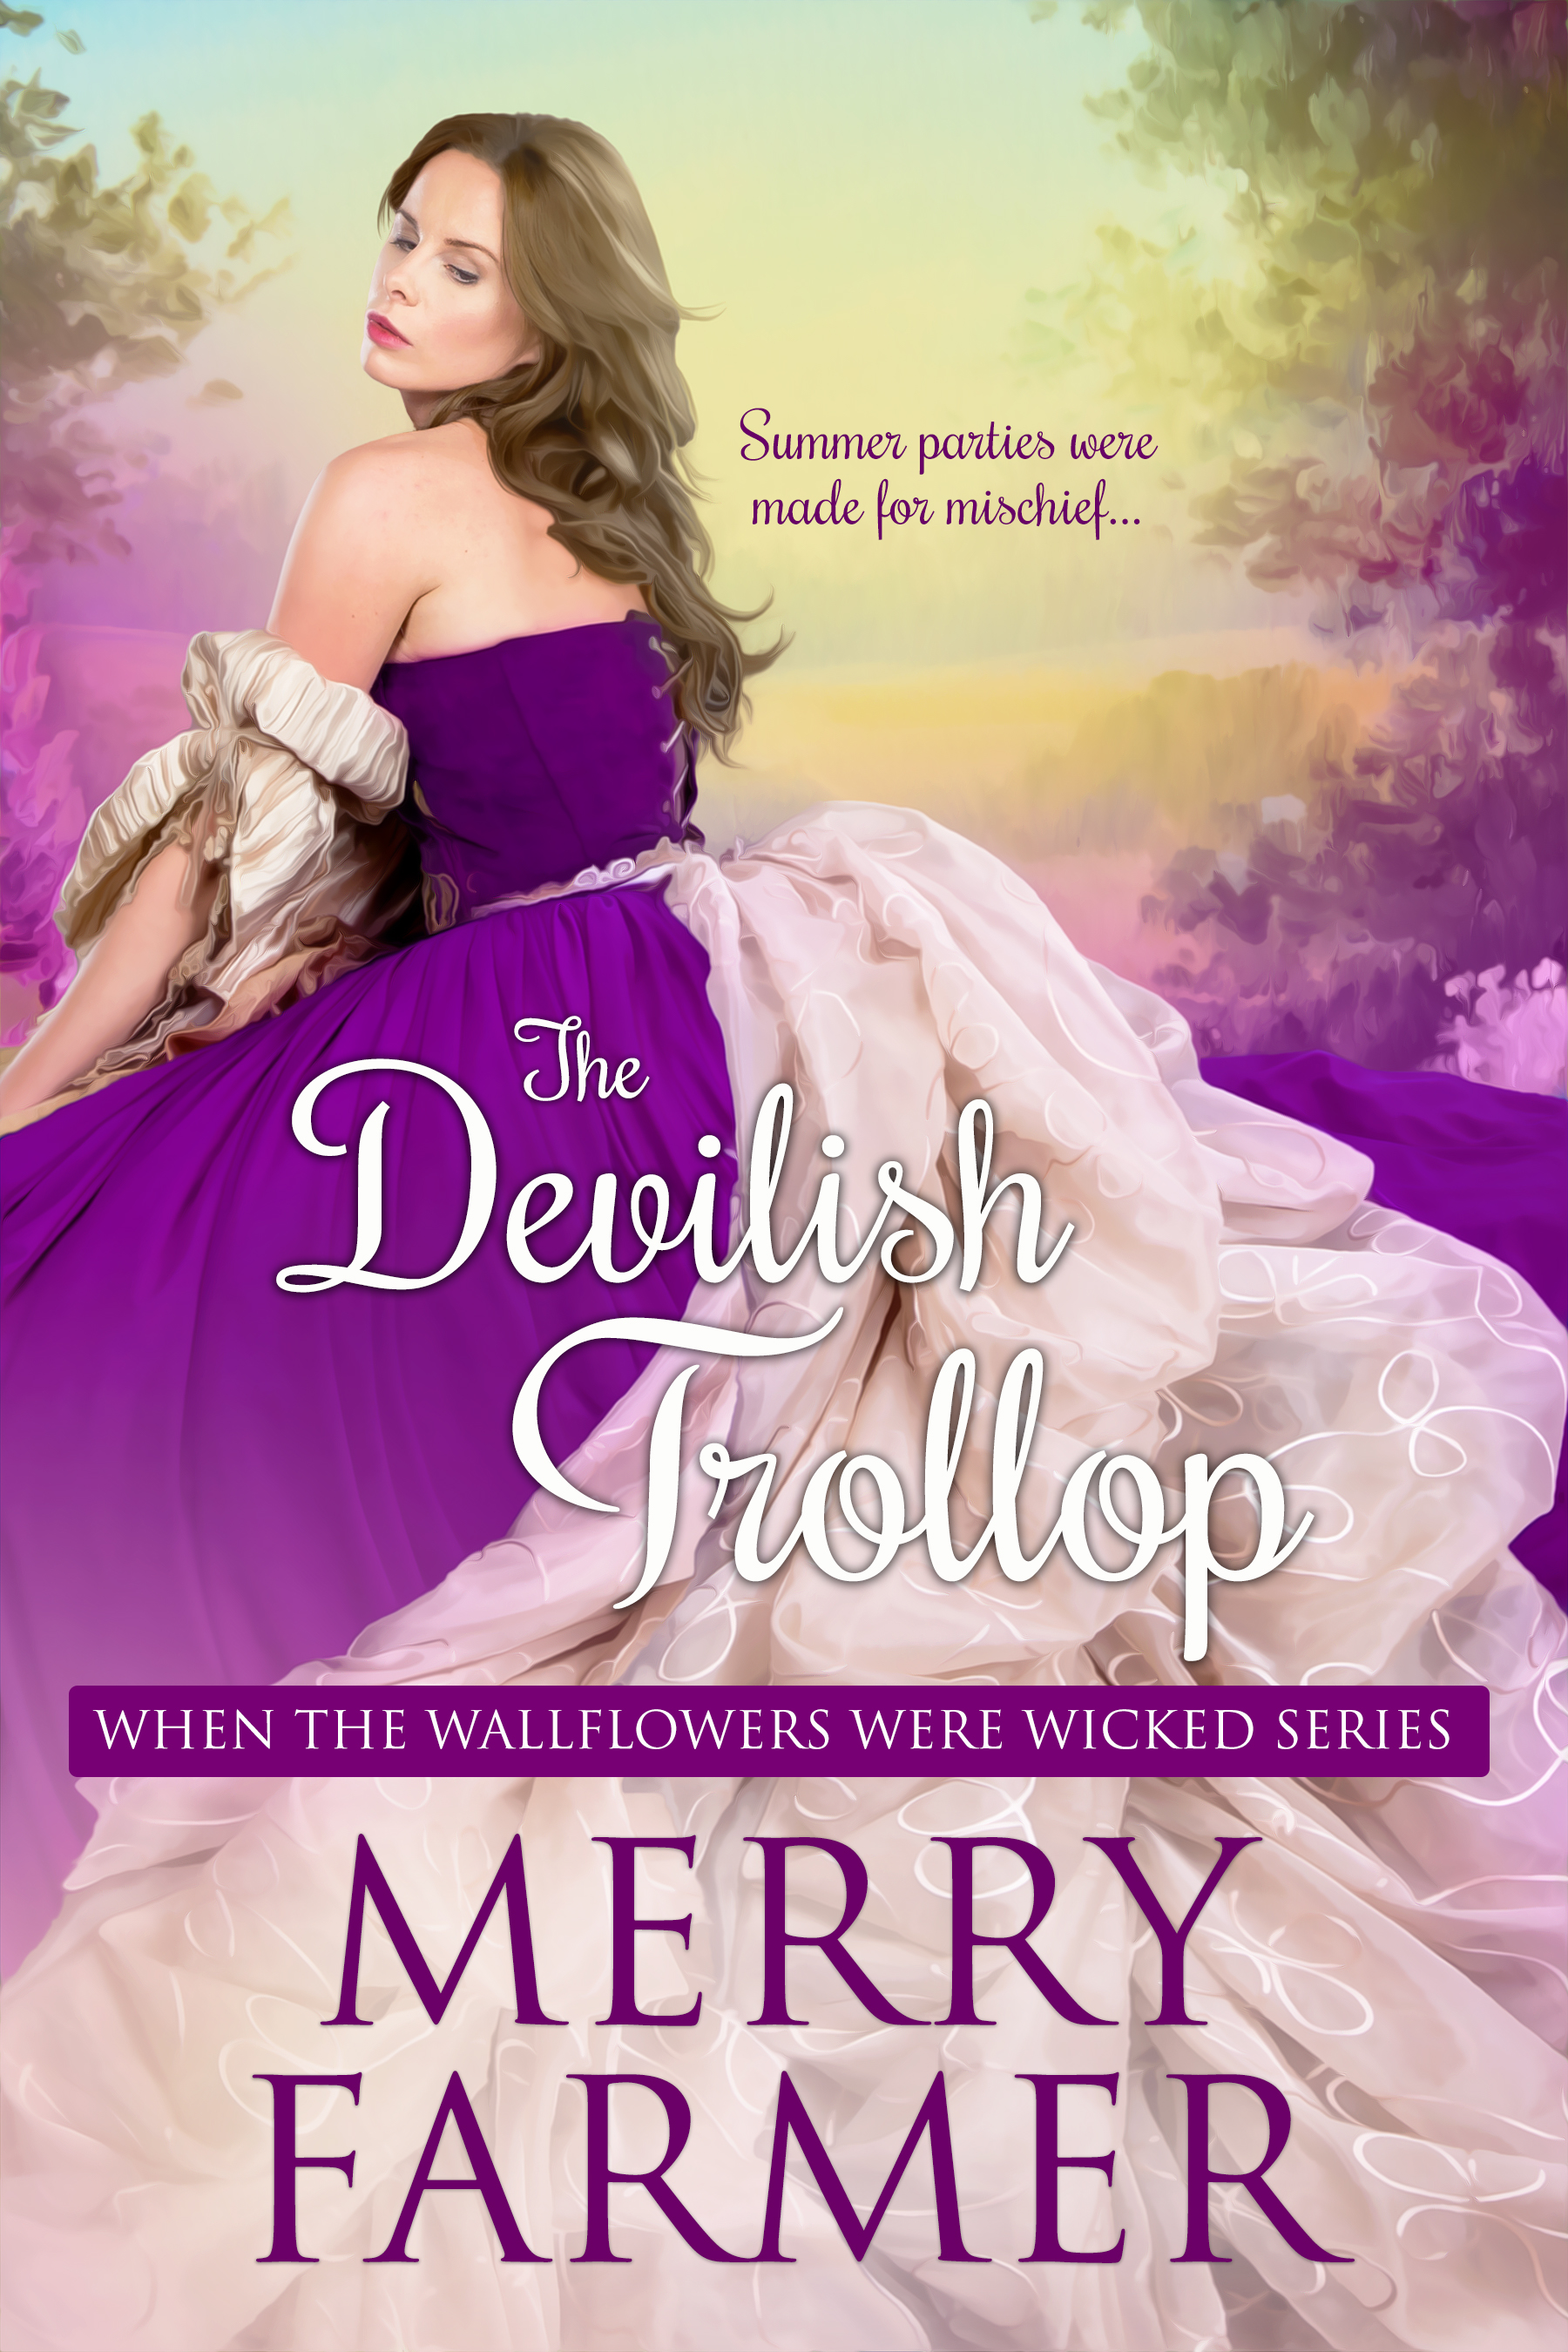 The Devilish Trollop (Book Seven) - Summer parties were made for mischief….Miss Felicity Murdoch may be an heiress with a large fortune attached to her, but she is as far from the genteel, respectable sort of lady that most men of the ton would want to marry. Her only hope to find a titled husband—as her father has insisted she much—is to deport herself well at her friend, Lady Caroline Herrington's, summer house party. But almost from the start, Felicity is in trouble.Lord Sullivan Whitlock is desperate to find a bride with money to save his family's failing estate. He has never been adept in the ways of society, though, and doesn't know how to woo honorable women. It is love at first sight when he spies Felicity across the room. She is the wickedest wallflower he has ever known.But what starts out as a fun and passionate flirtation runs into trouble when the nefarious Lord Cunningham seeks to split the two lovers apart. Will the truth win out over deception? Will Felicity and Sully, not to mention Lord Cunningham, get what they deserve?A light-hearted, fun, SUPER steamy, Regency romp—a quick read, not to be taken too seriously.PLEASE BE ADVISED – Steam Level: Five-Alarm Fire with a few F-bombs. Don't say you weren't warned.